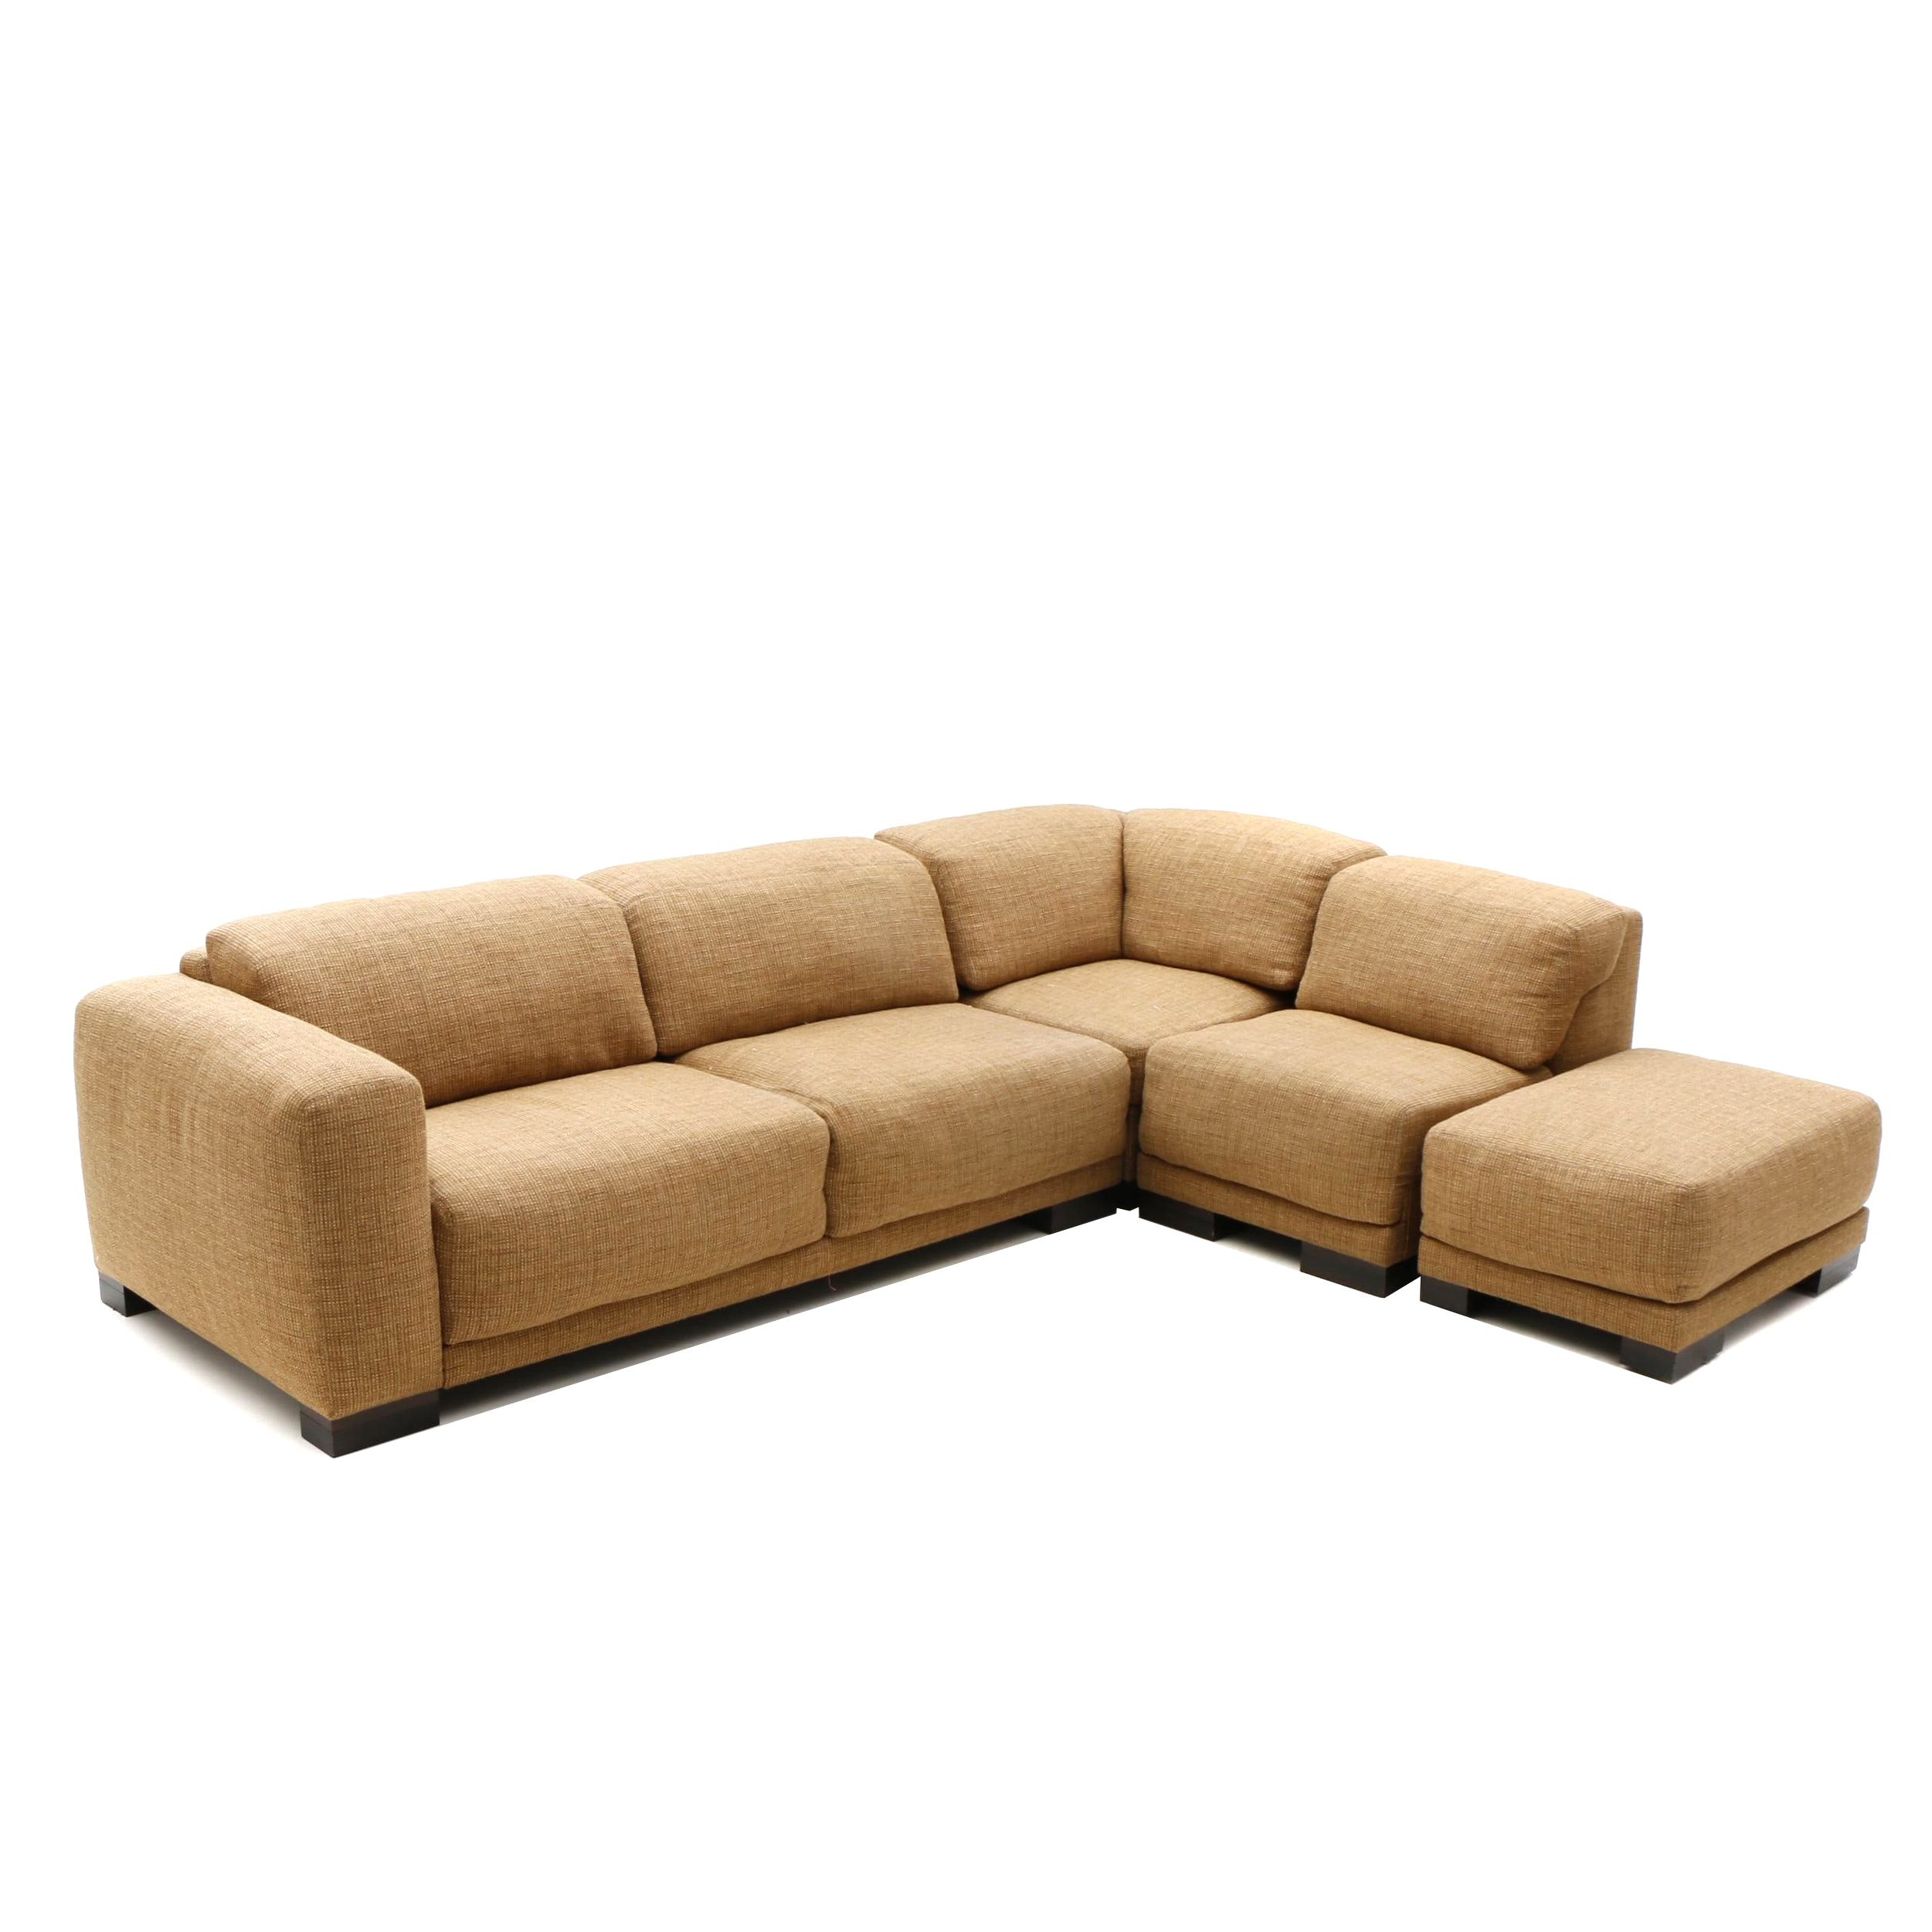 Contemporary Tan Fabric Upholstered Sectional